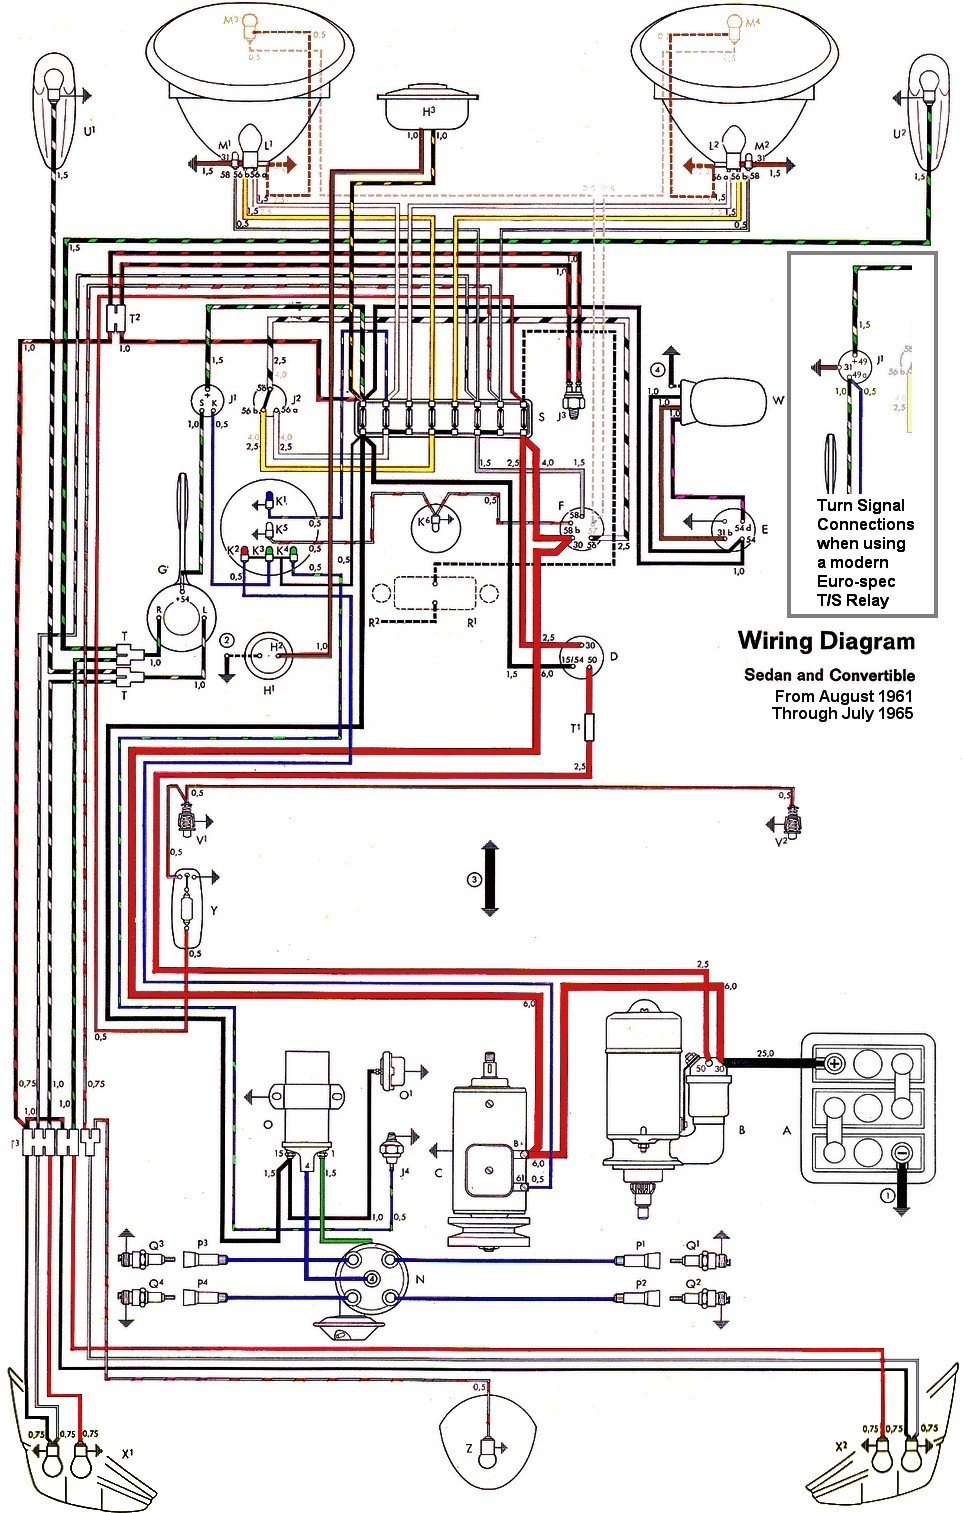 bug_62 65withinset thesamba com type 1 wiring diagrams vw bug wiring diagram at readyjetset.co